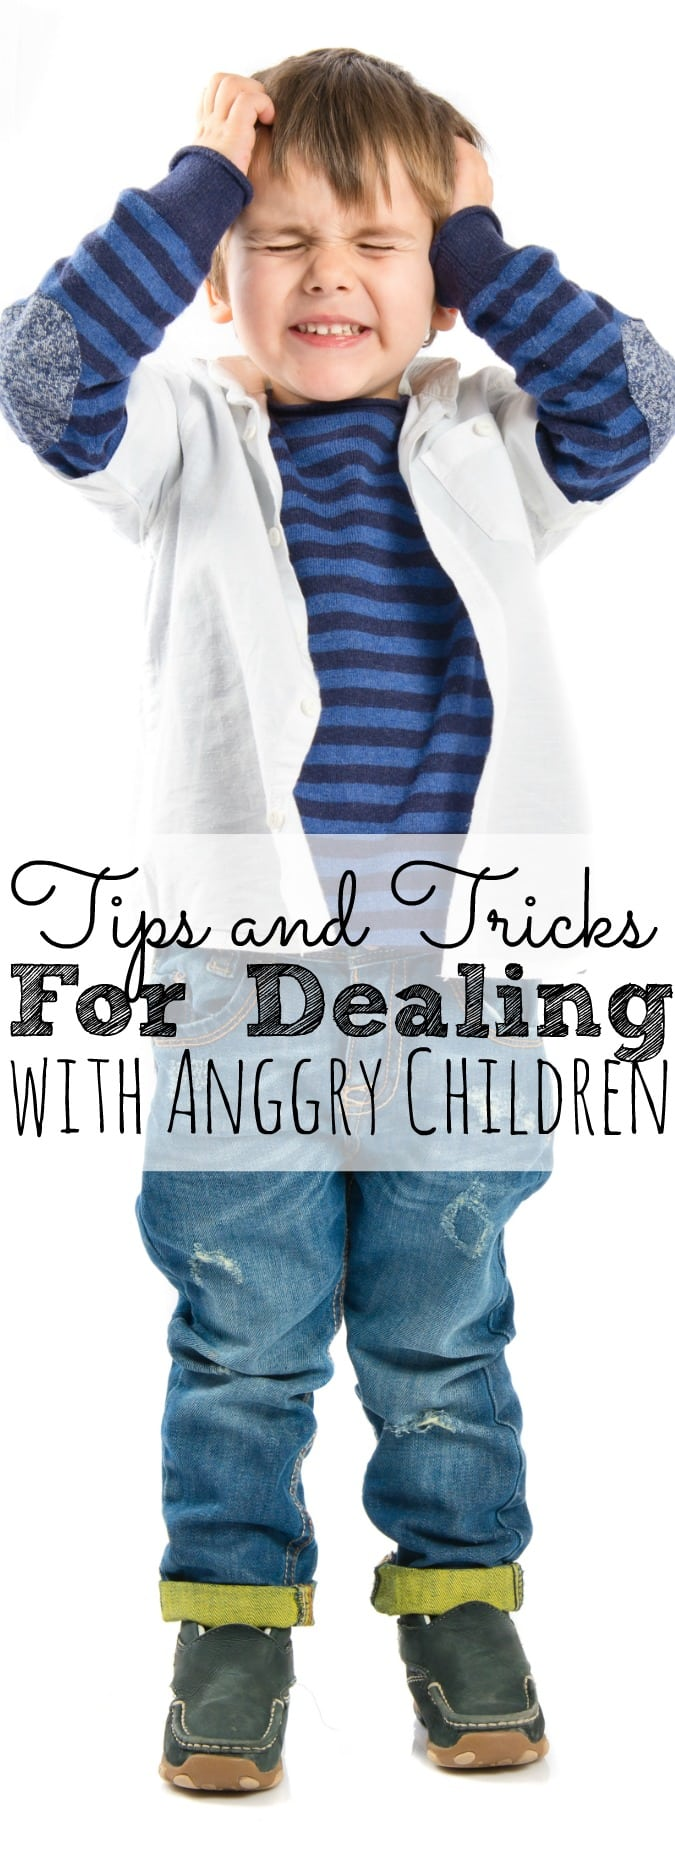 Tips For Dealing With Angry Children - simplytodaylife.com